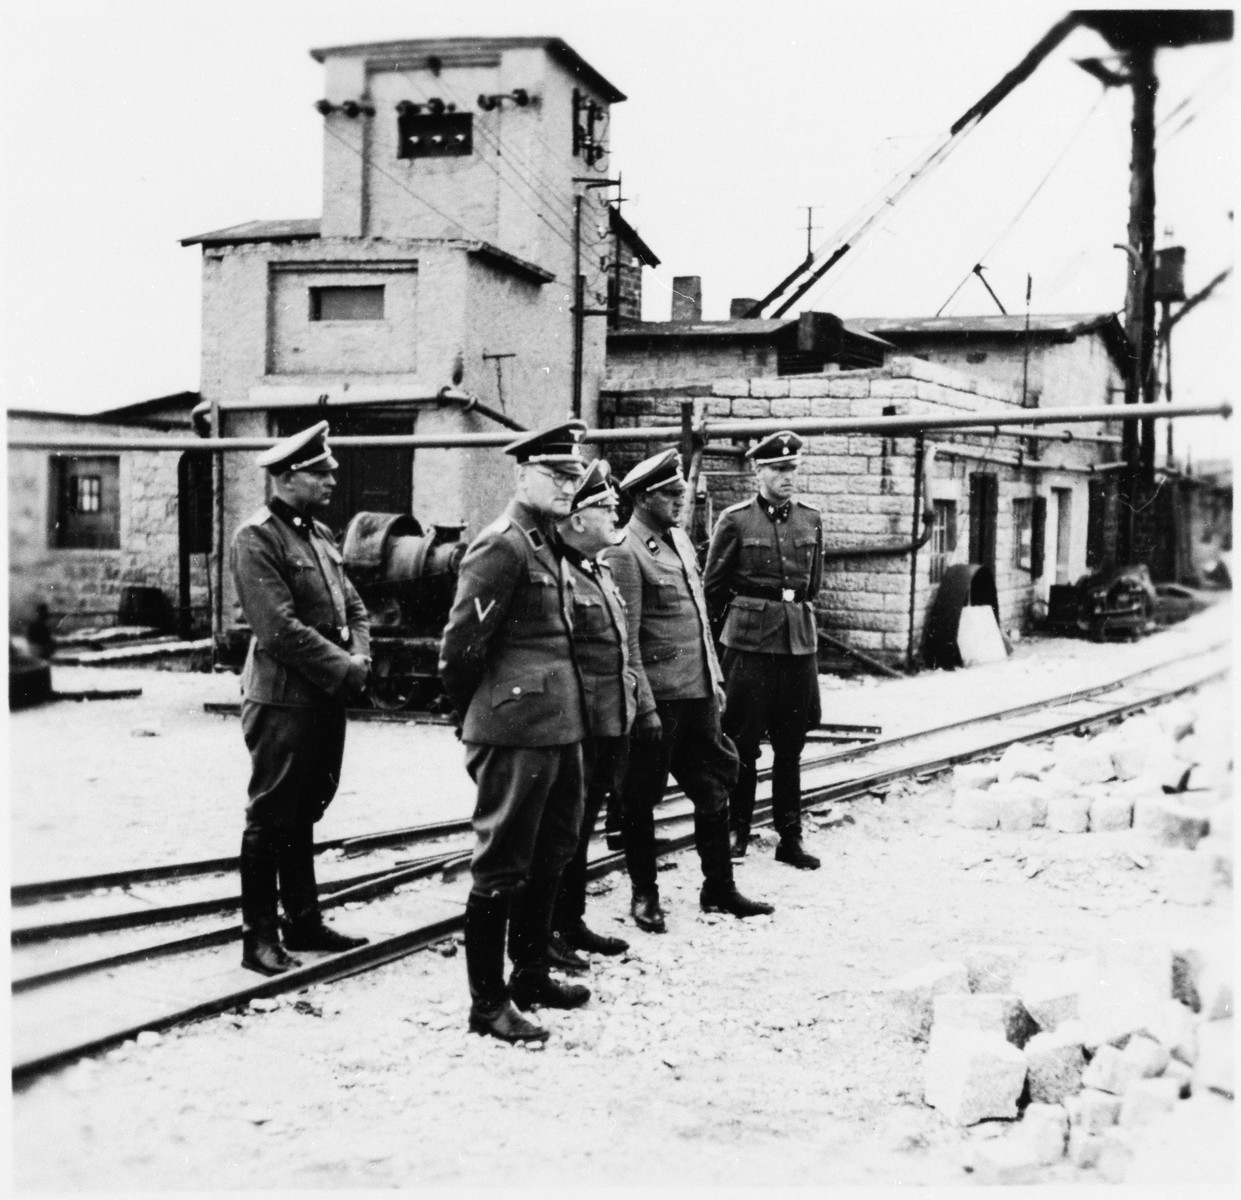 SS-Obergruppenfuehrer Ernst Schmauser visits the Gross-Rosen concentration camp's quarry with other SS officers.  Commandant Arthur Roedl is standing next to Schmauser in the center.